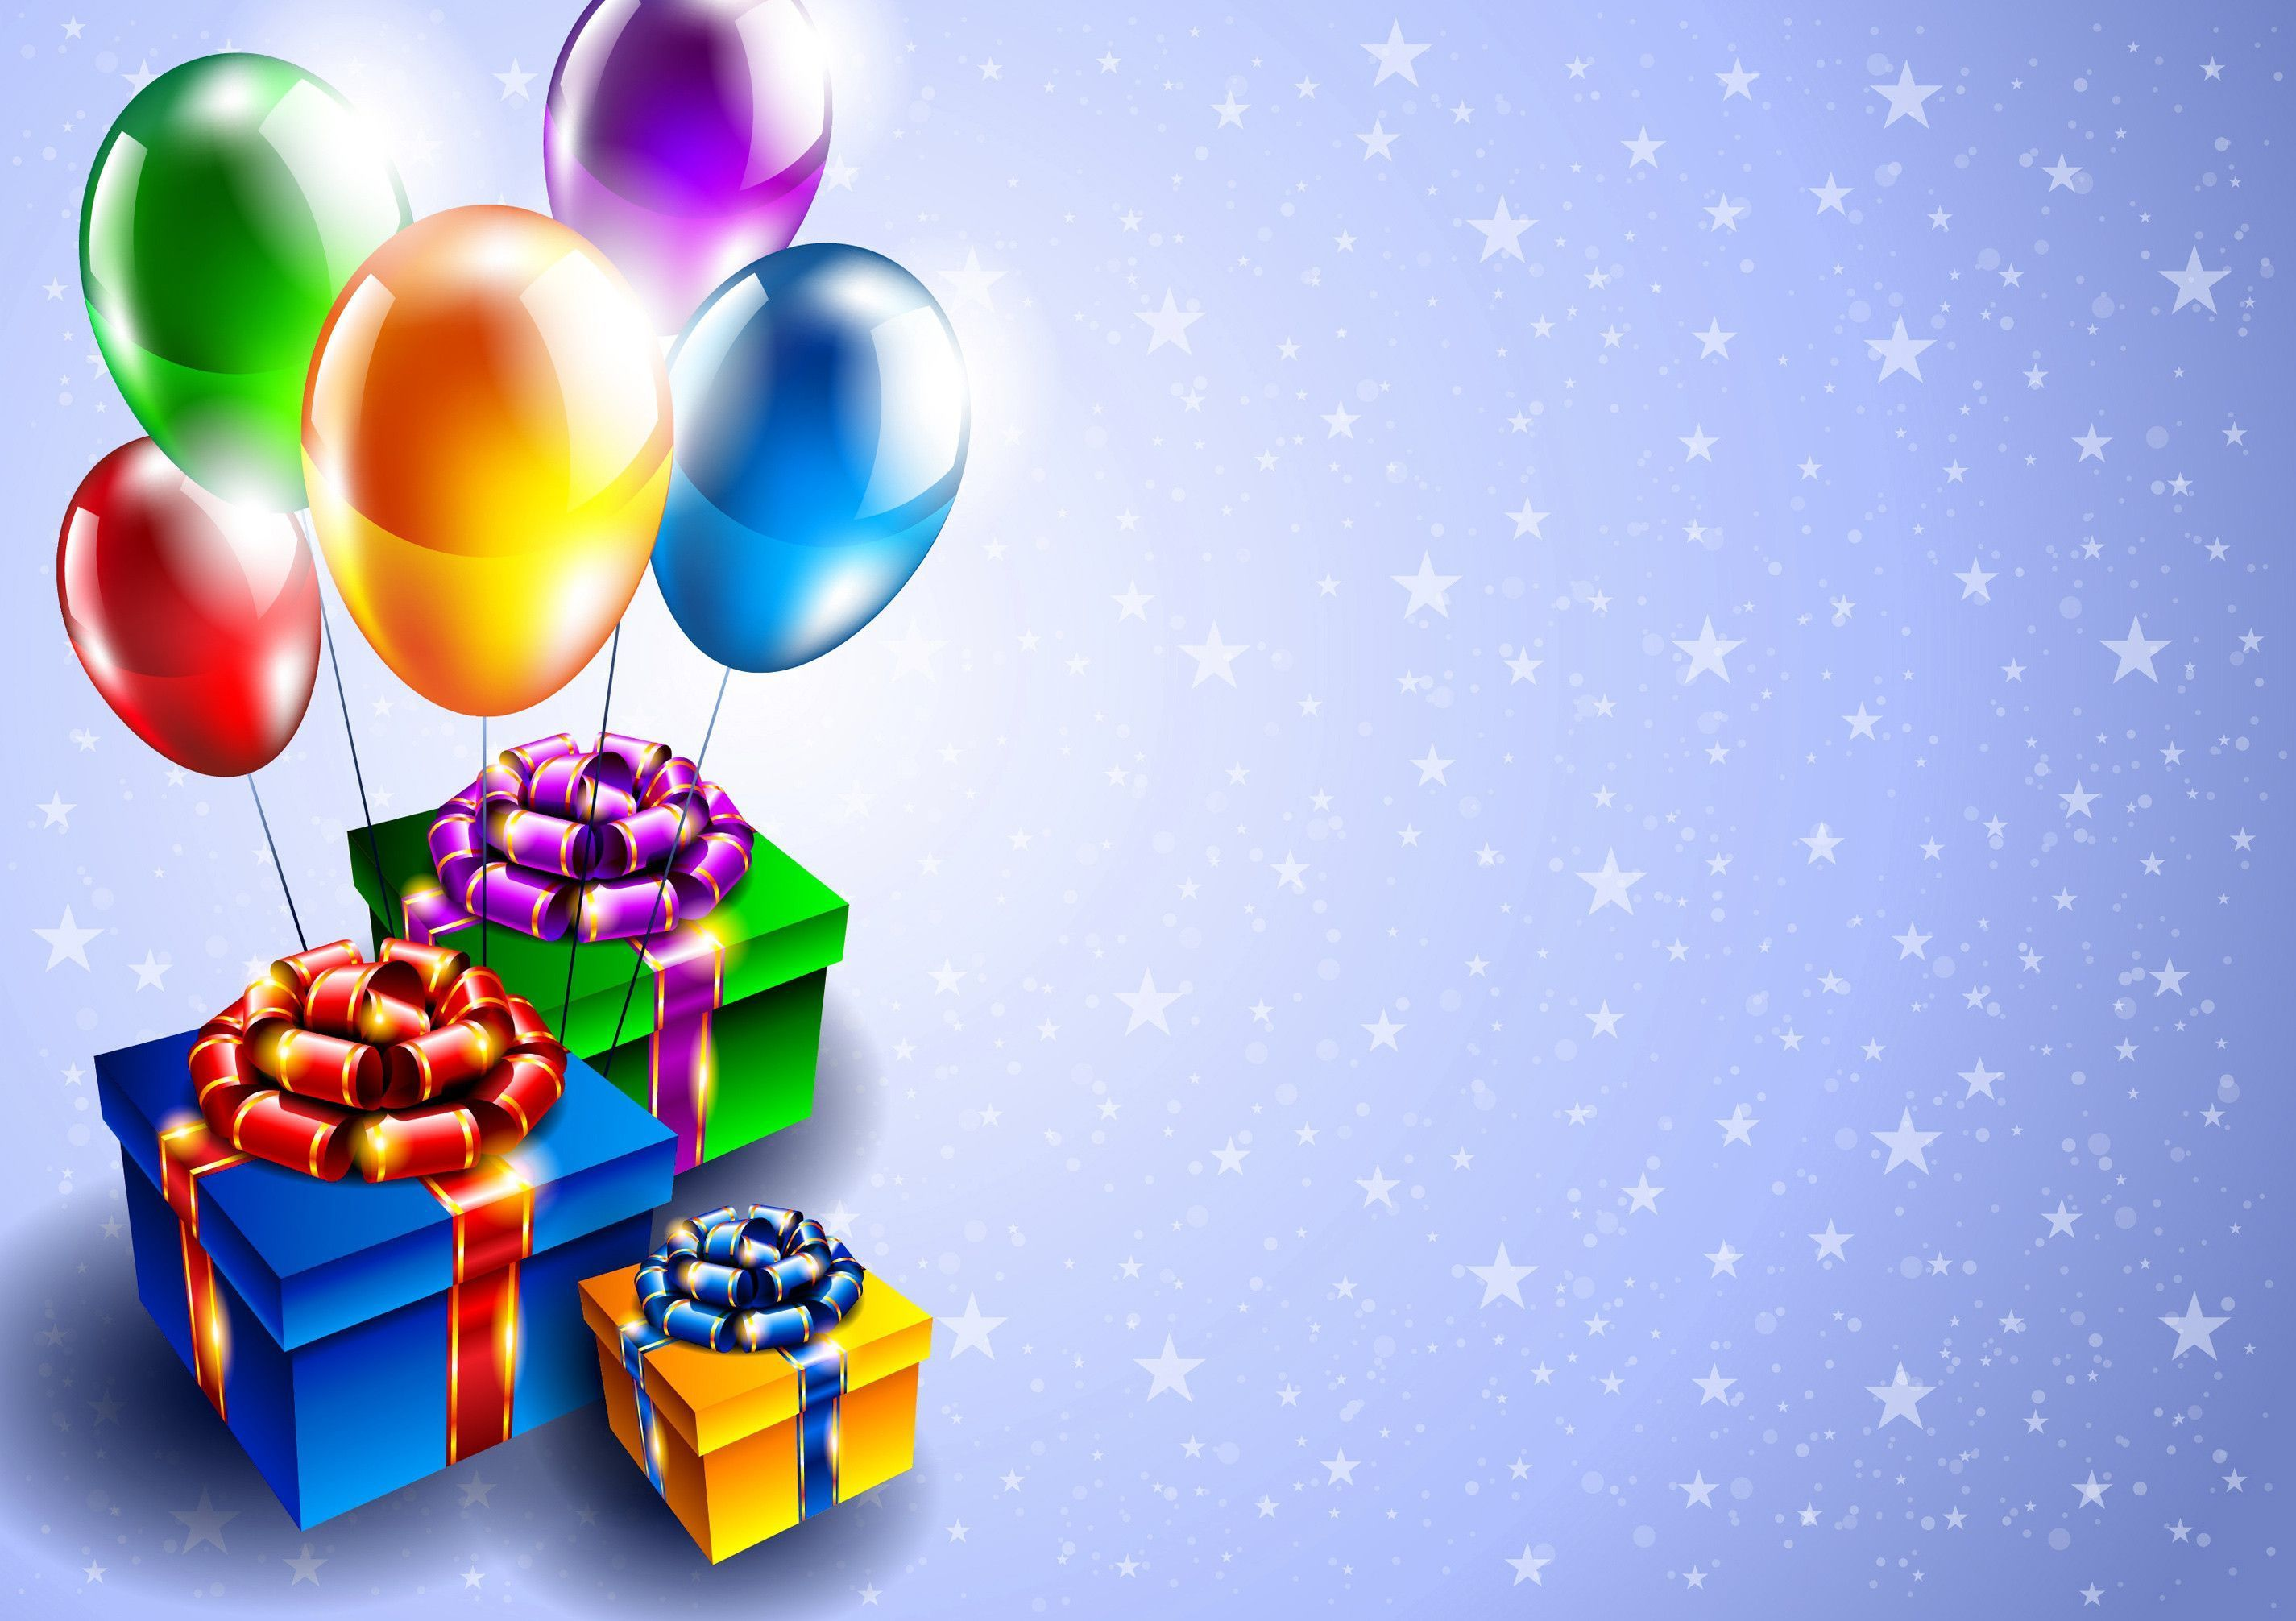 free hd colorful balloons image